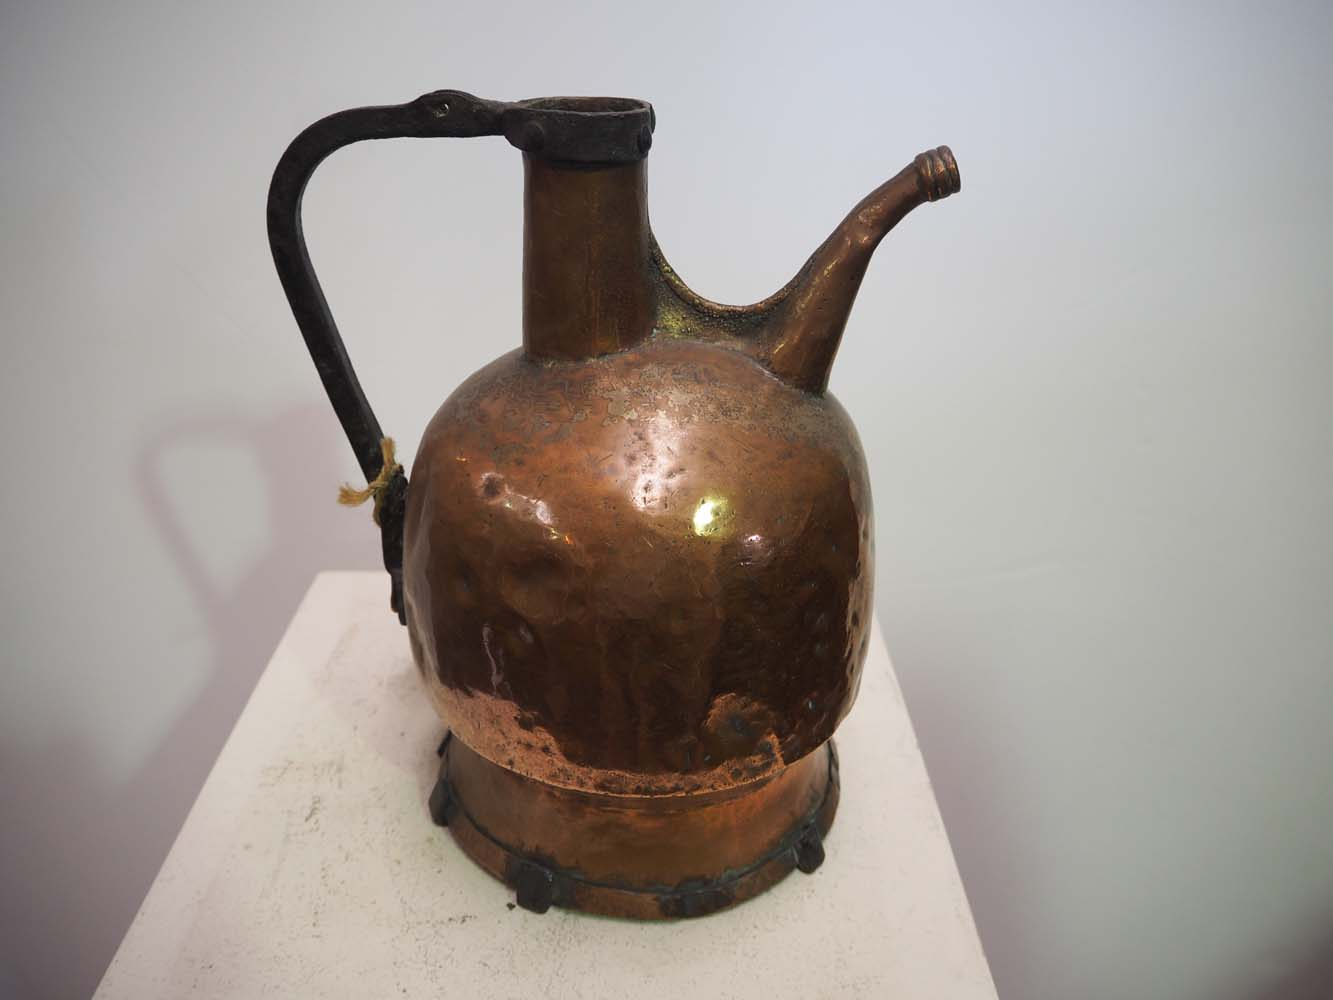 Antique Metalwork homewares Ottoman period copper jug